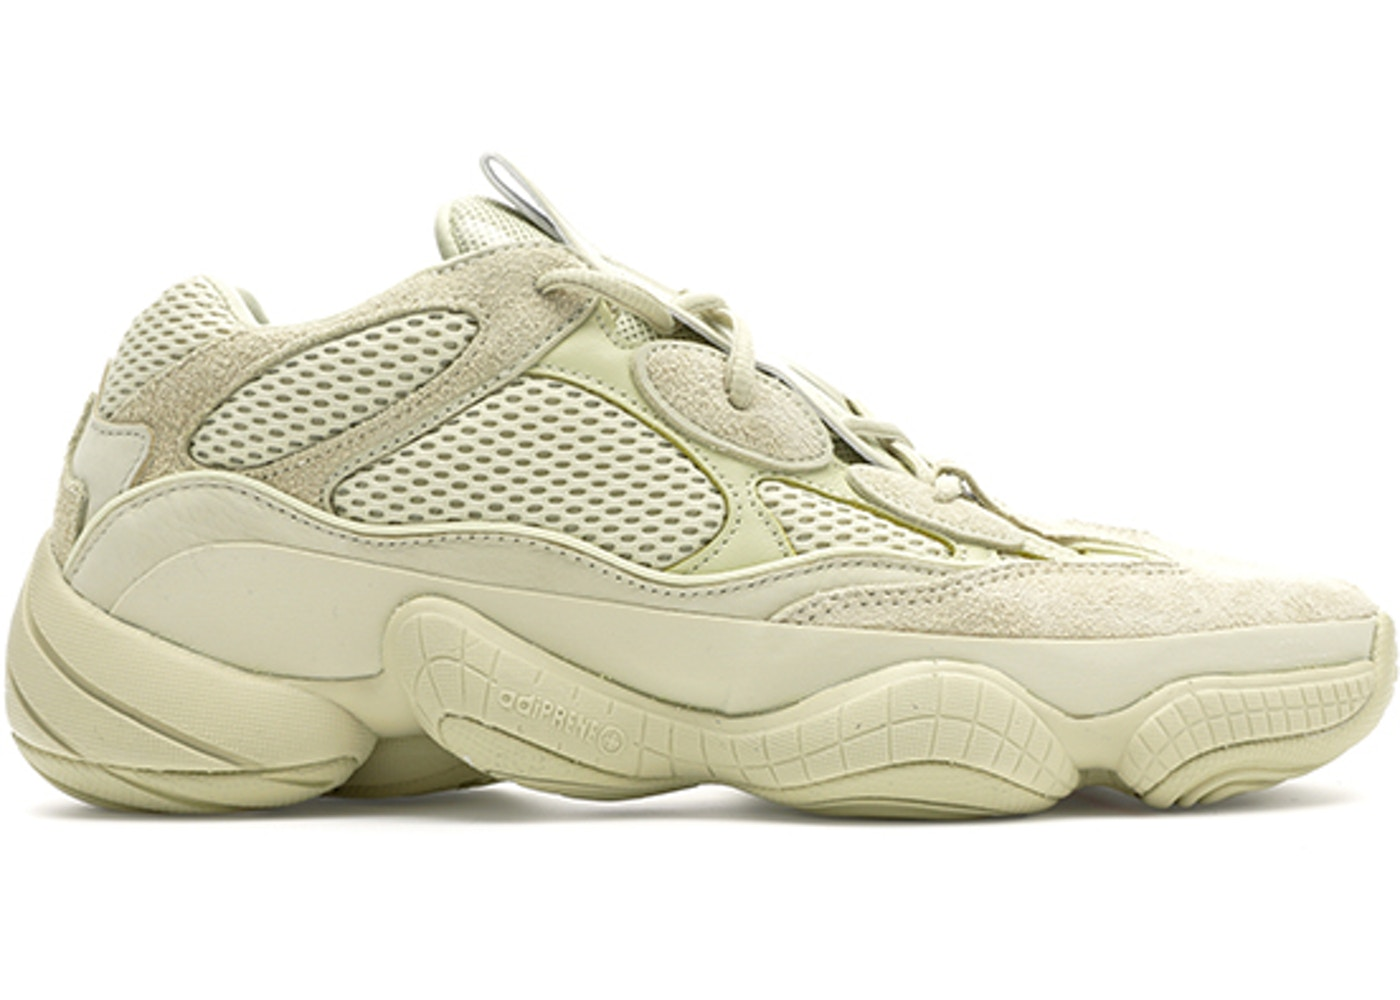 a958df028f6 adidas Yeezy 500 Super Moon Yellow - DB2966